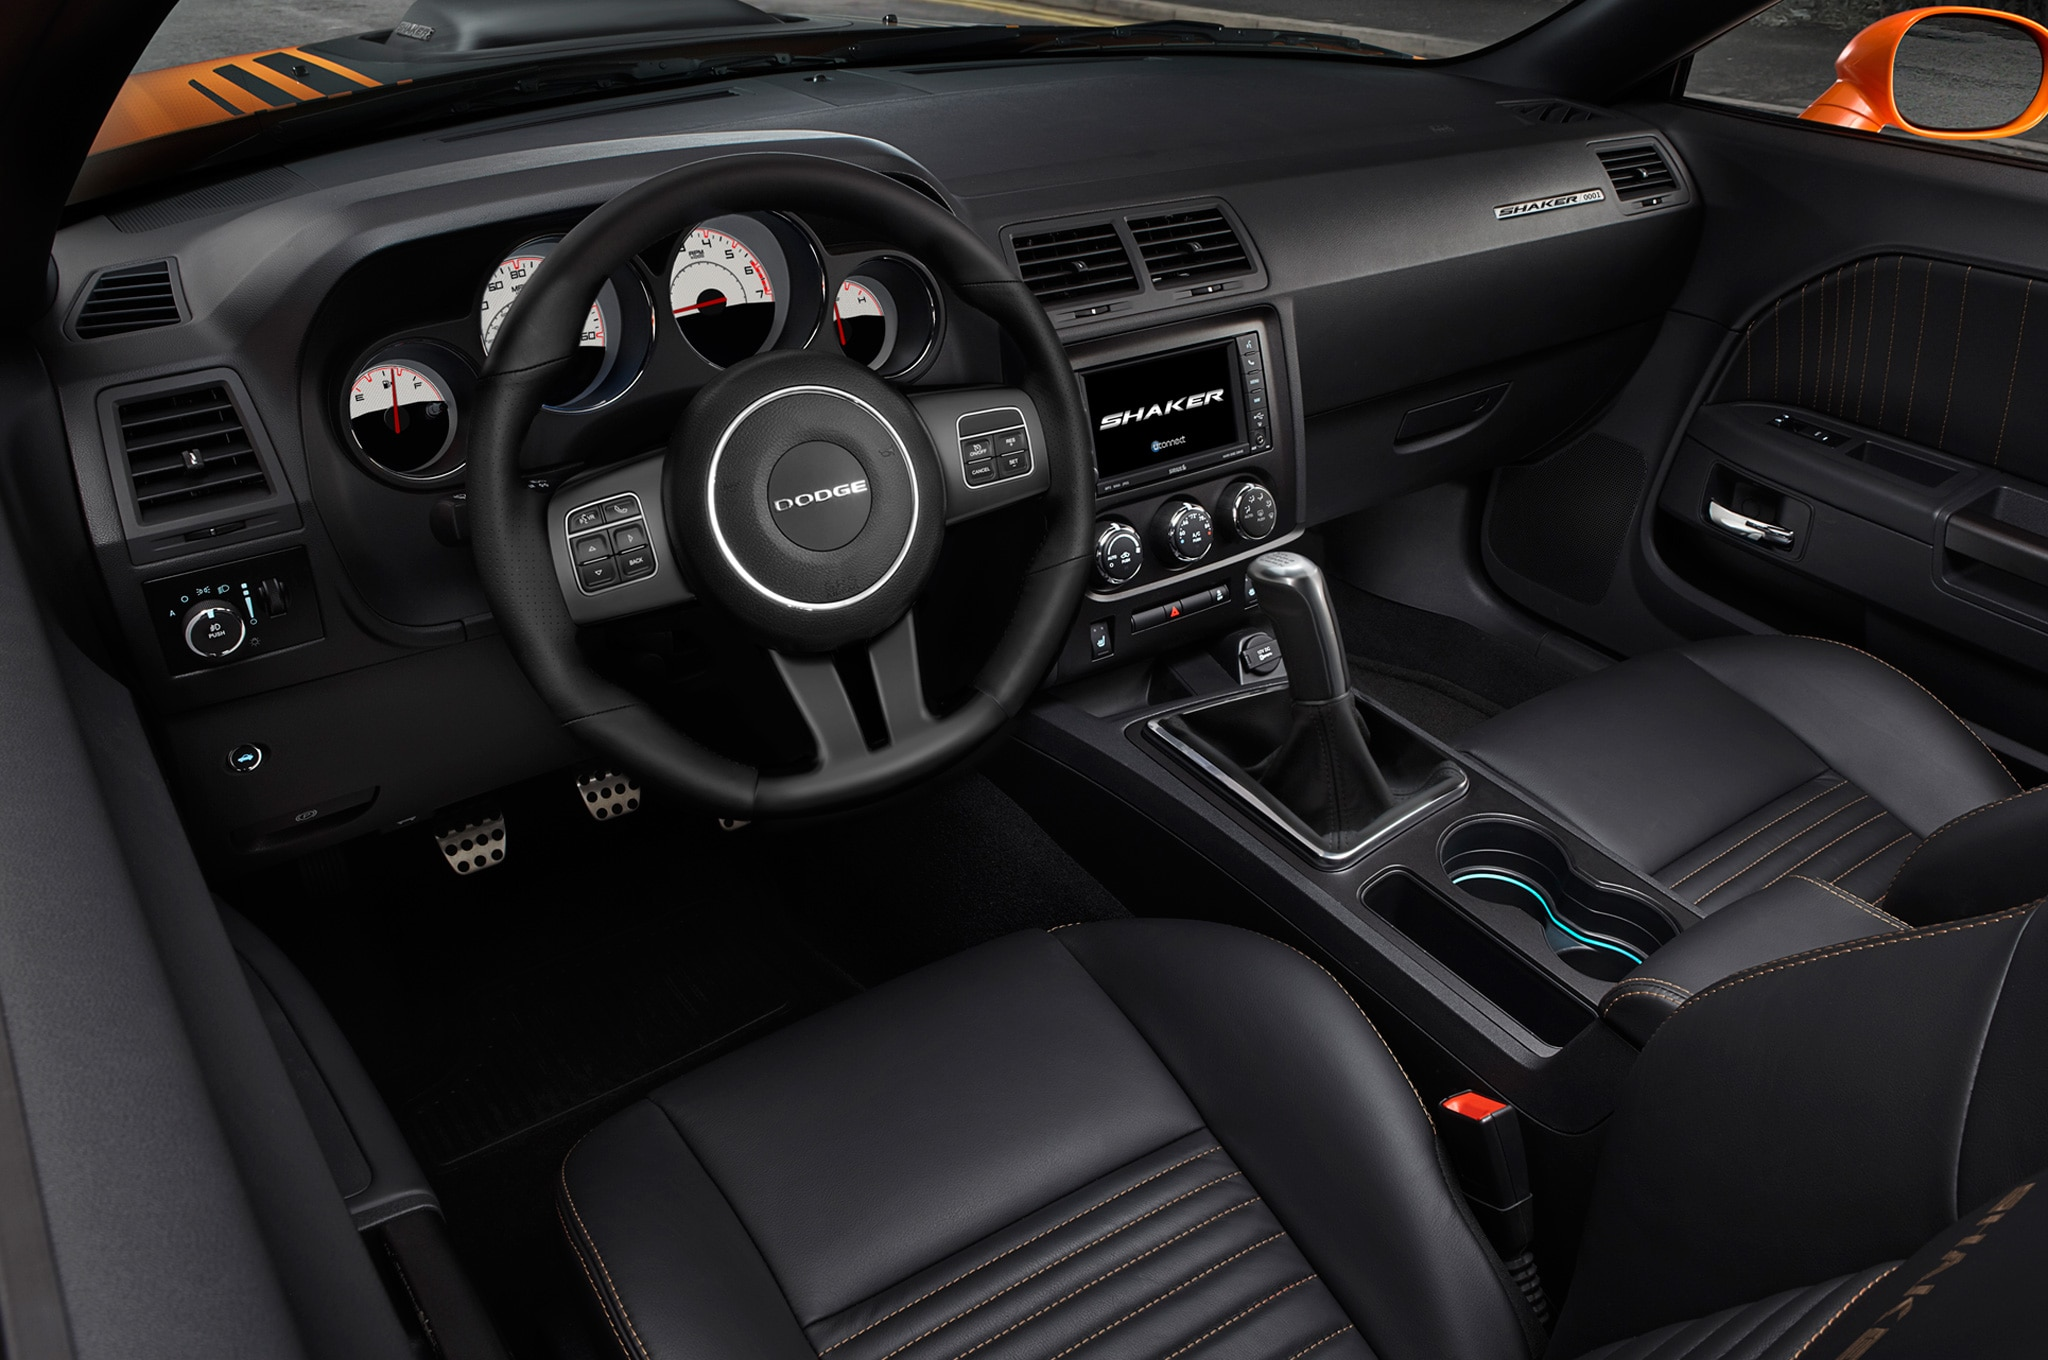 New dodge challenger 2018 interior